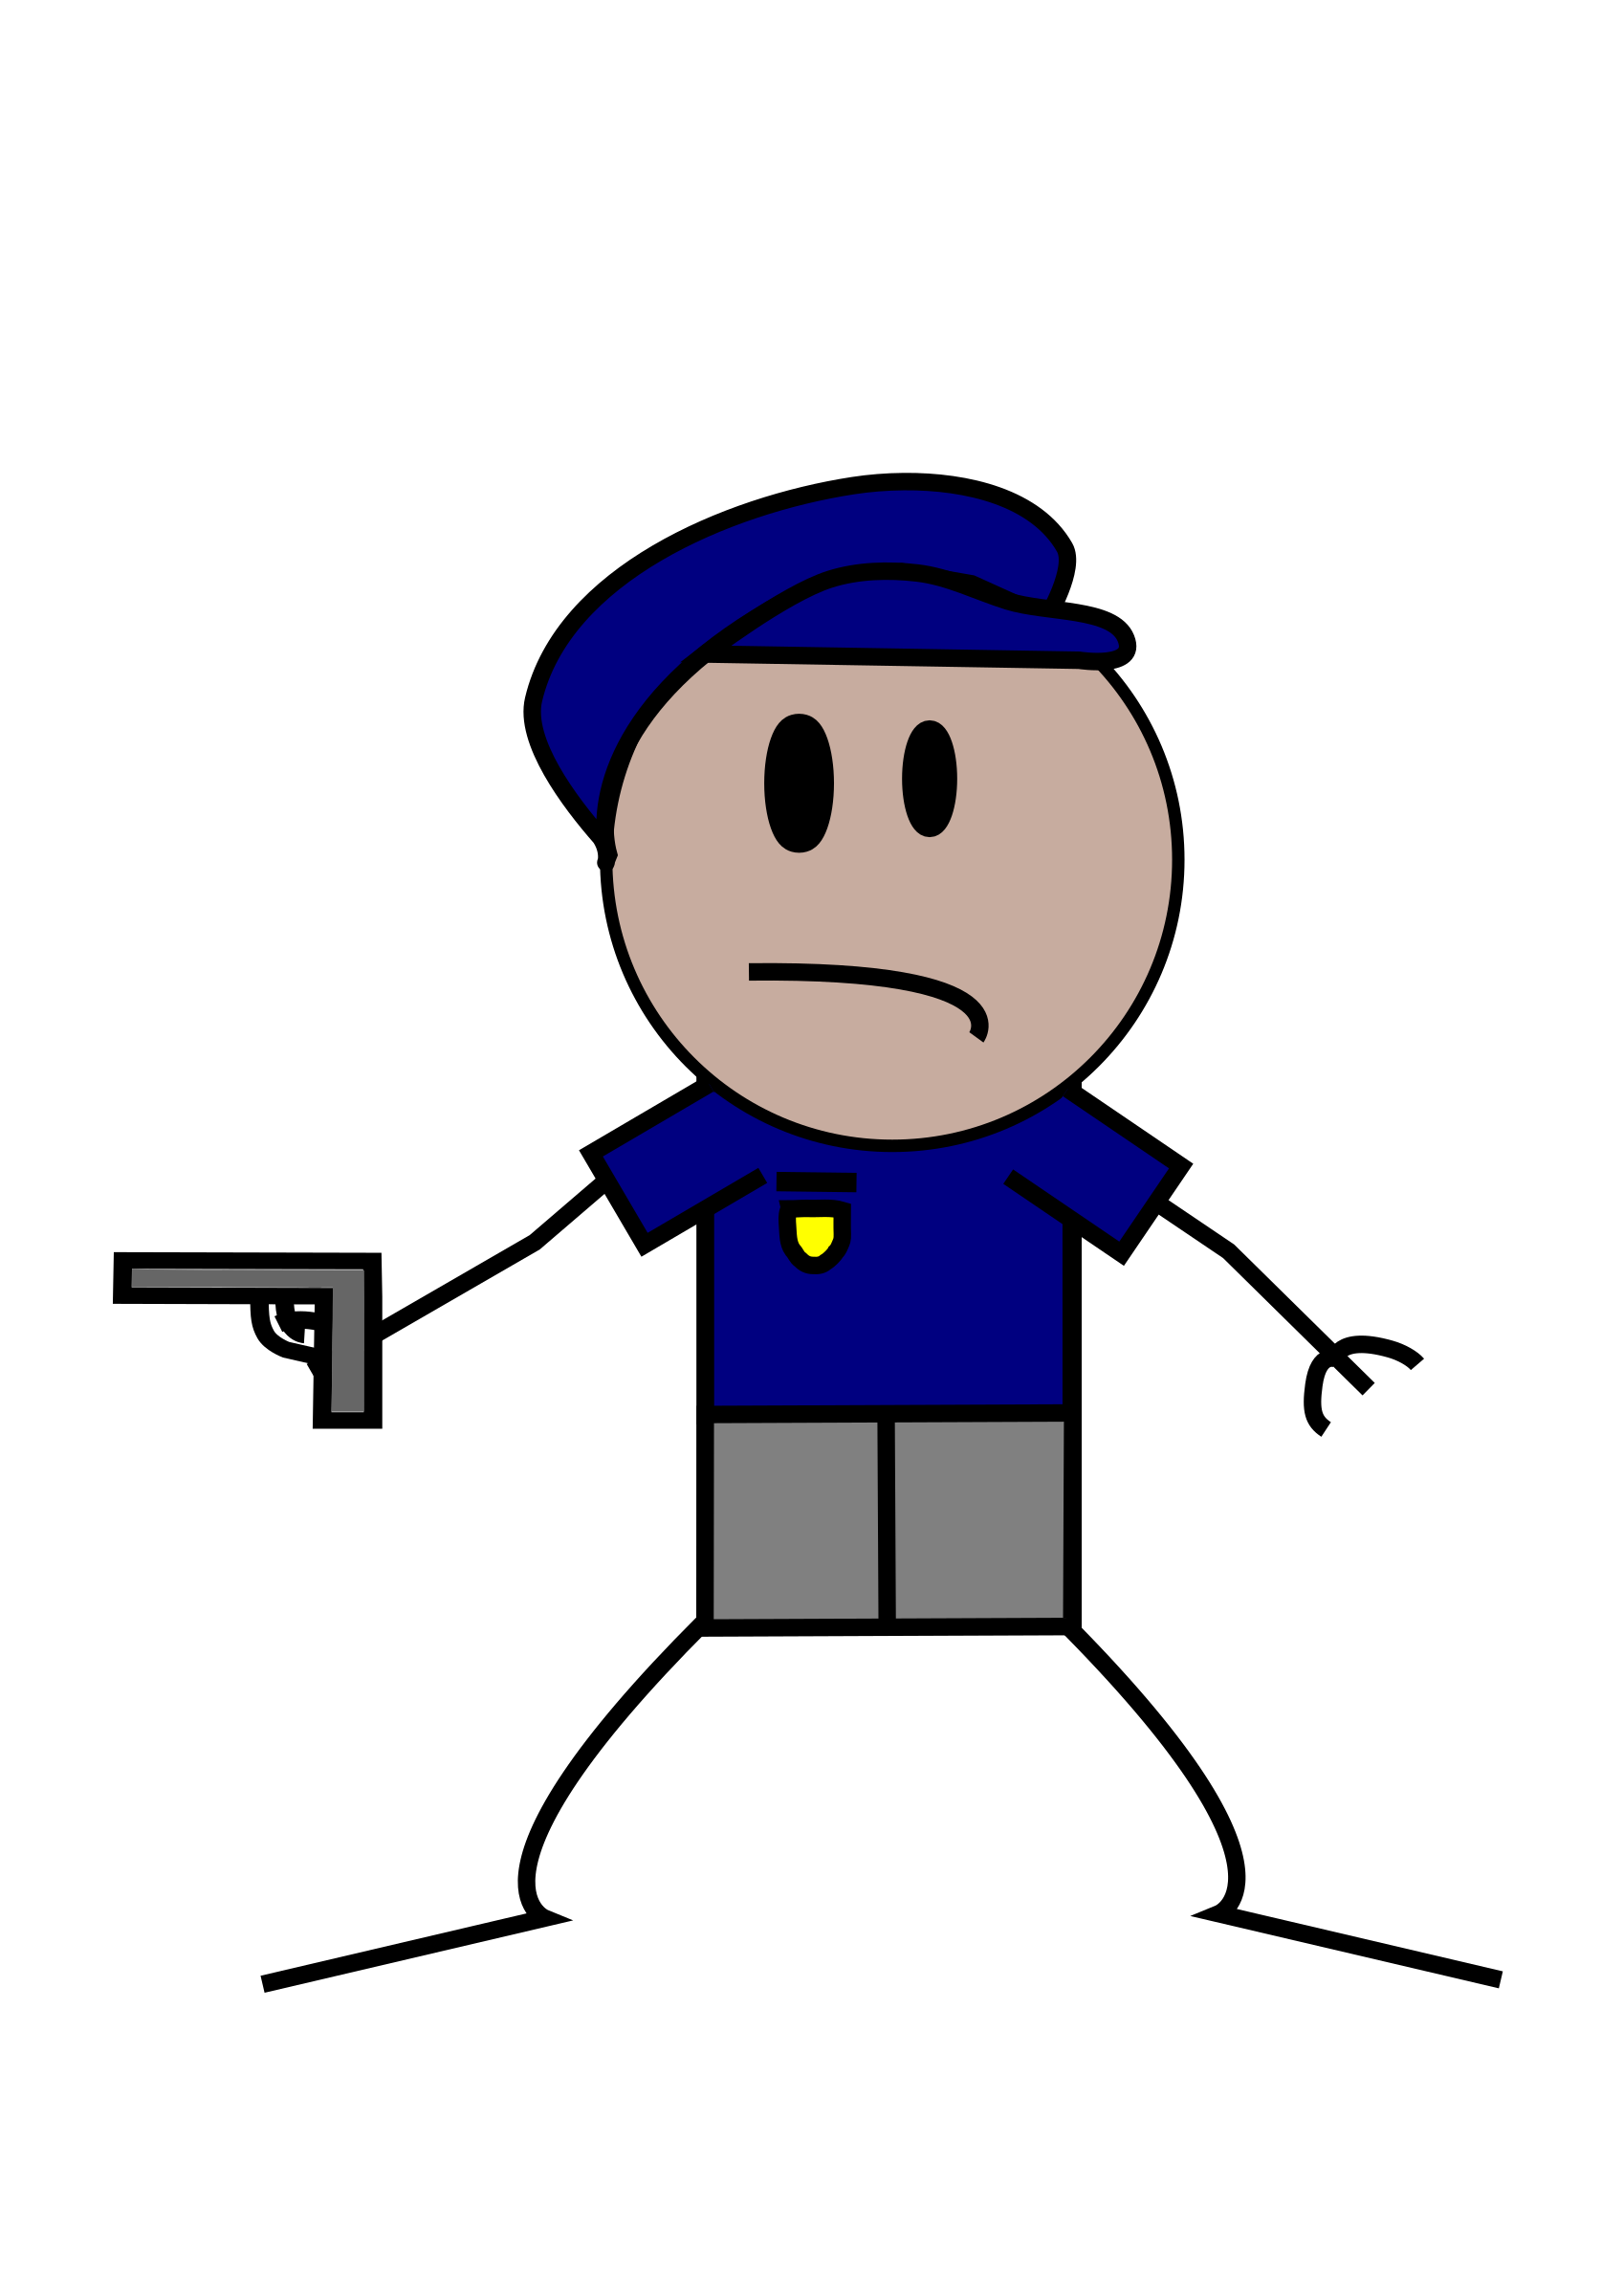 Police Stick Figure by Lil_Mermaid_Girl